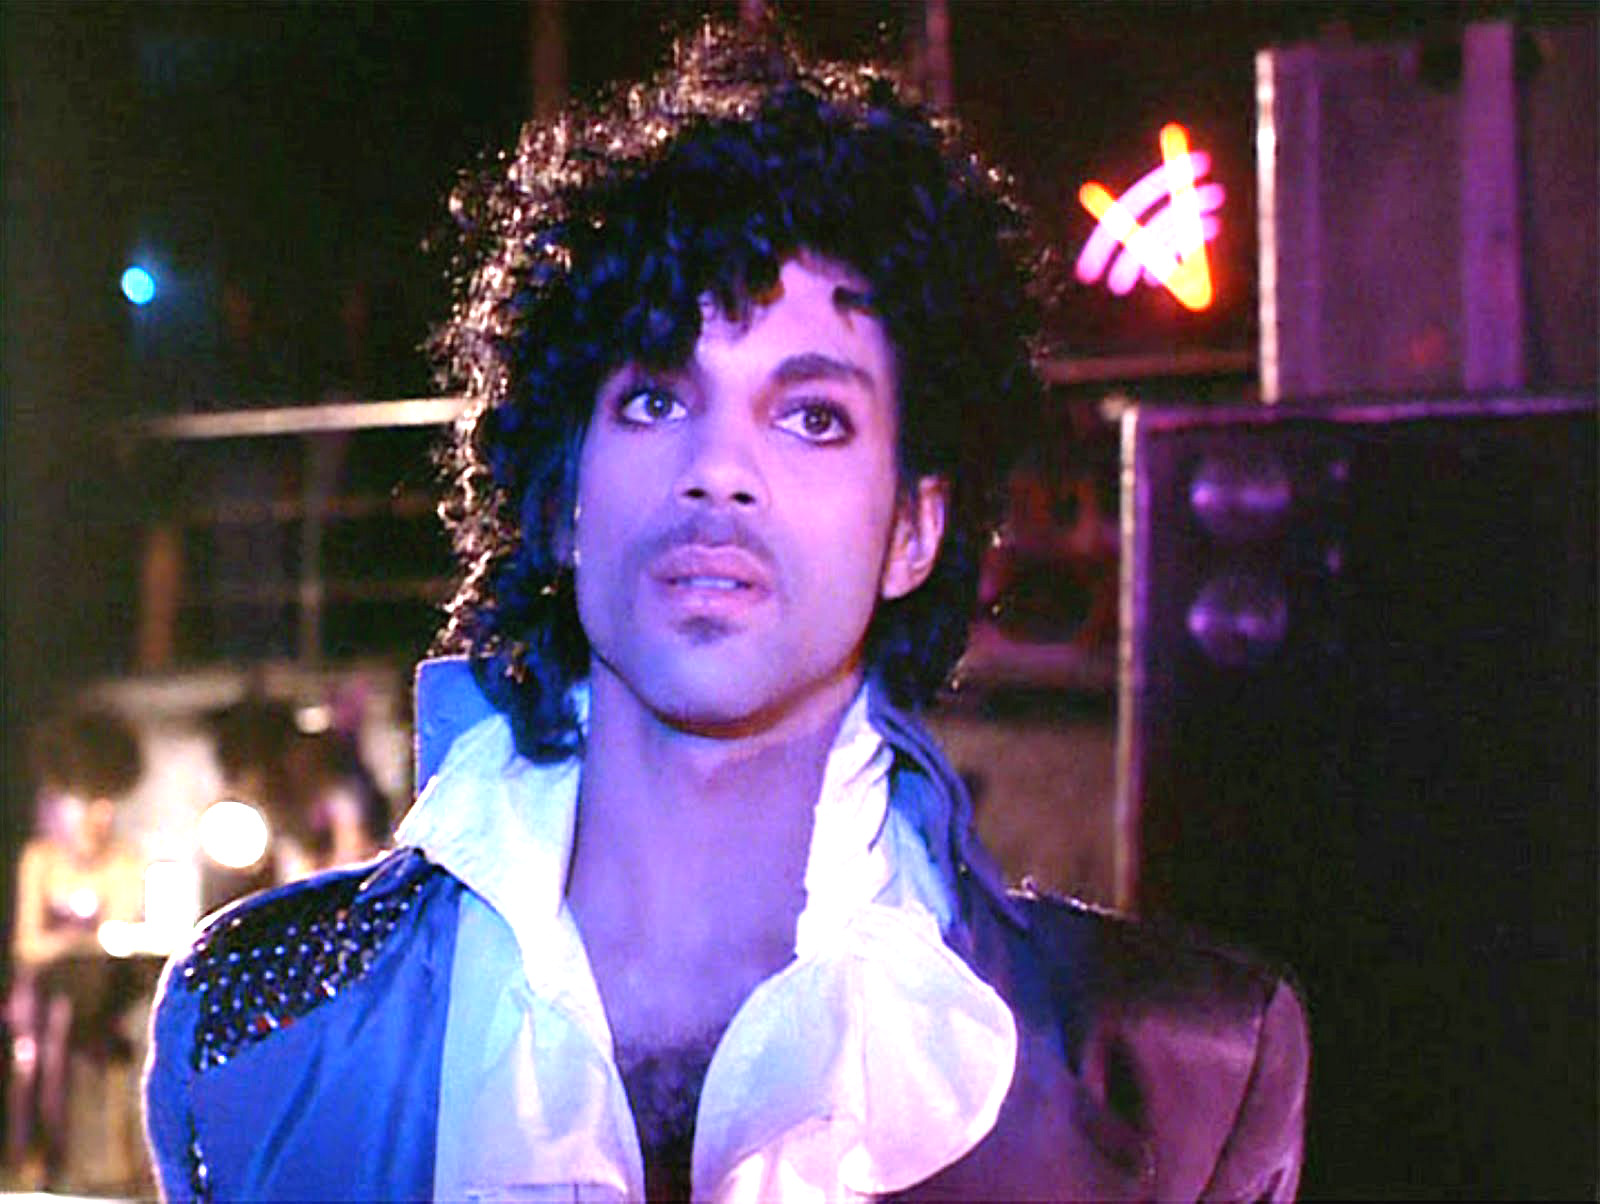 Editors Note: Prince's music is impossible to find streaming ...